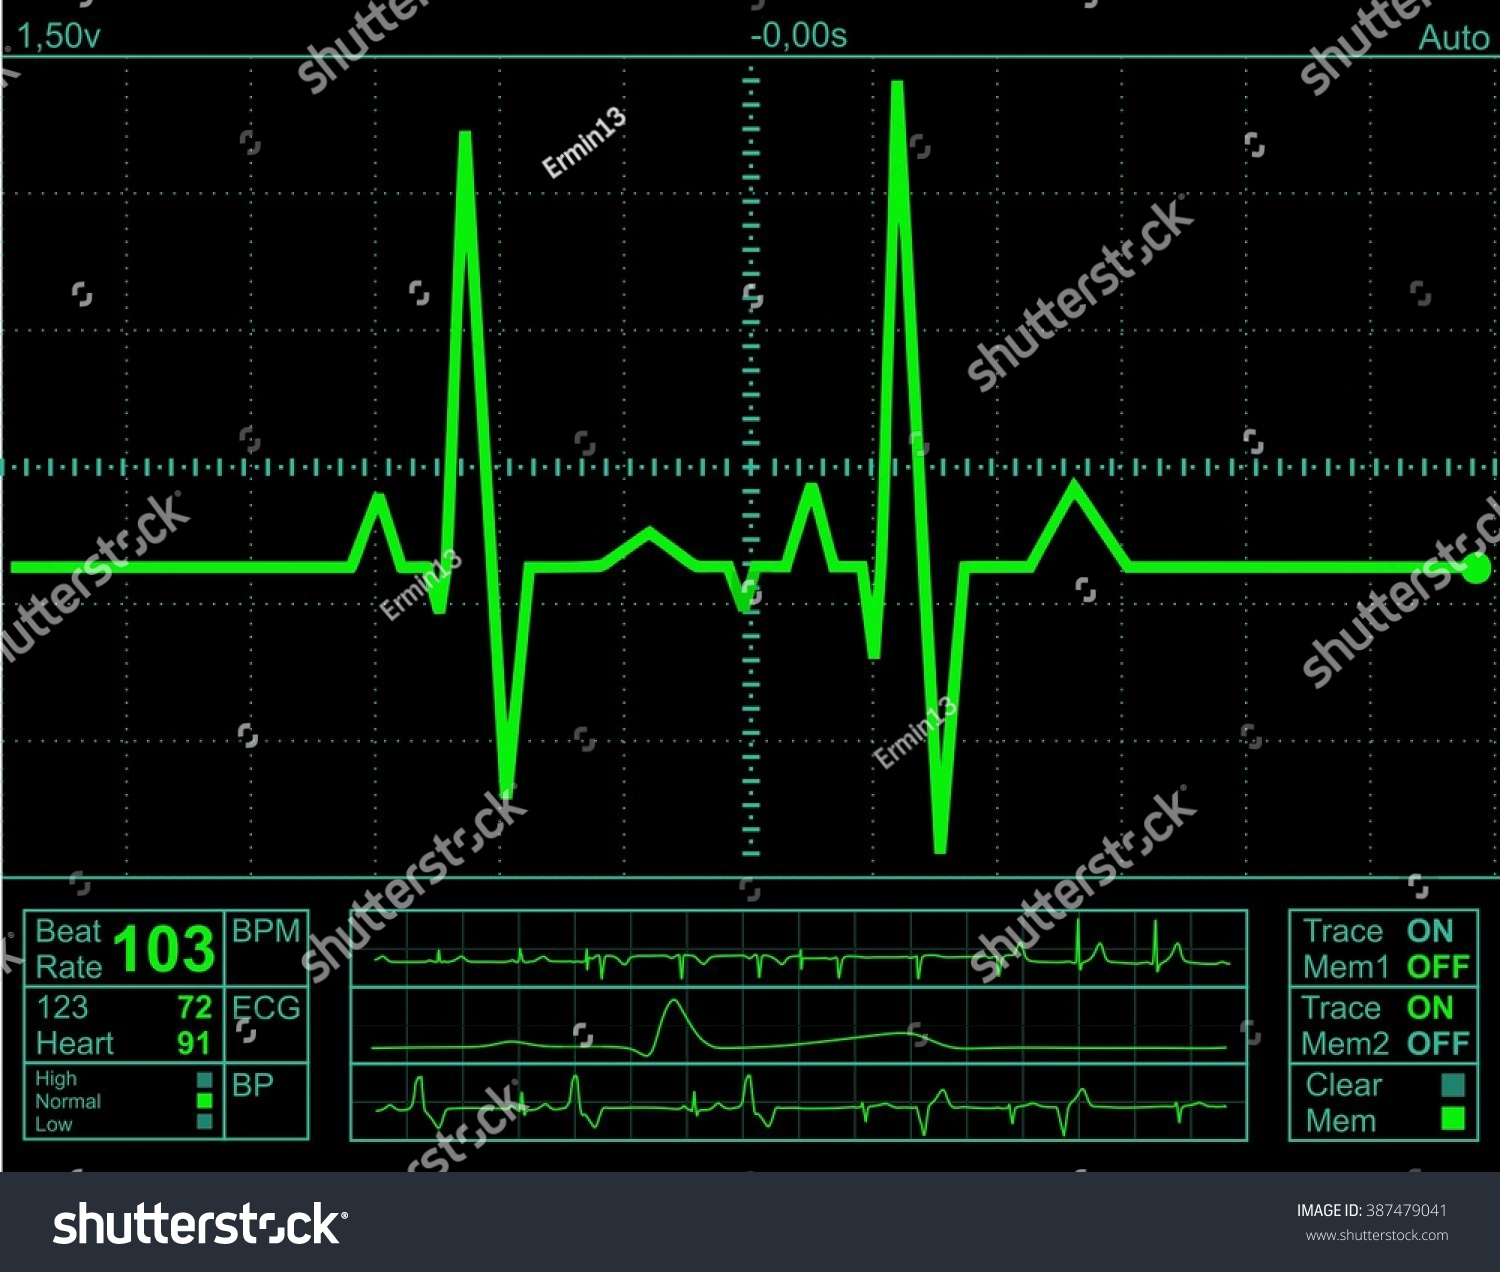 Illustration Electrical Activity Human Heart Rate Stock ...